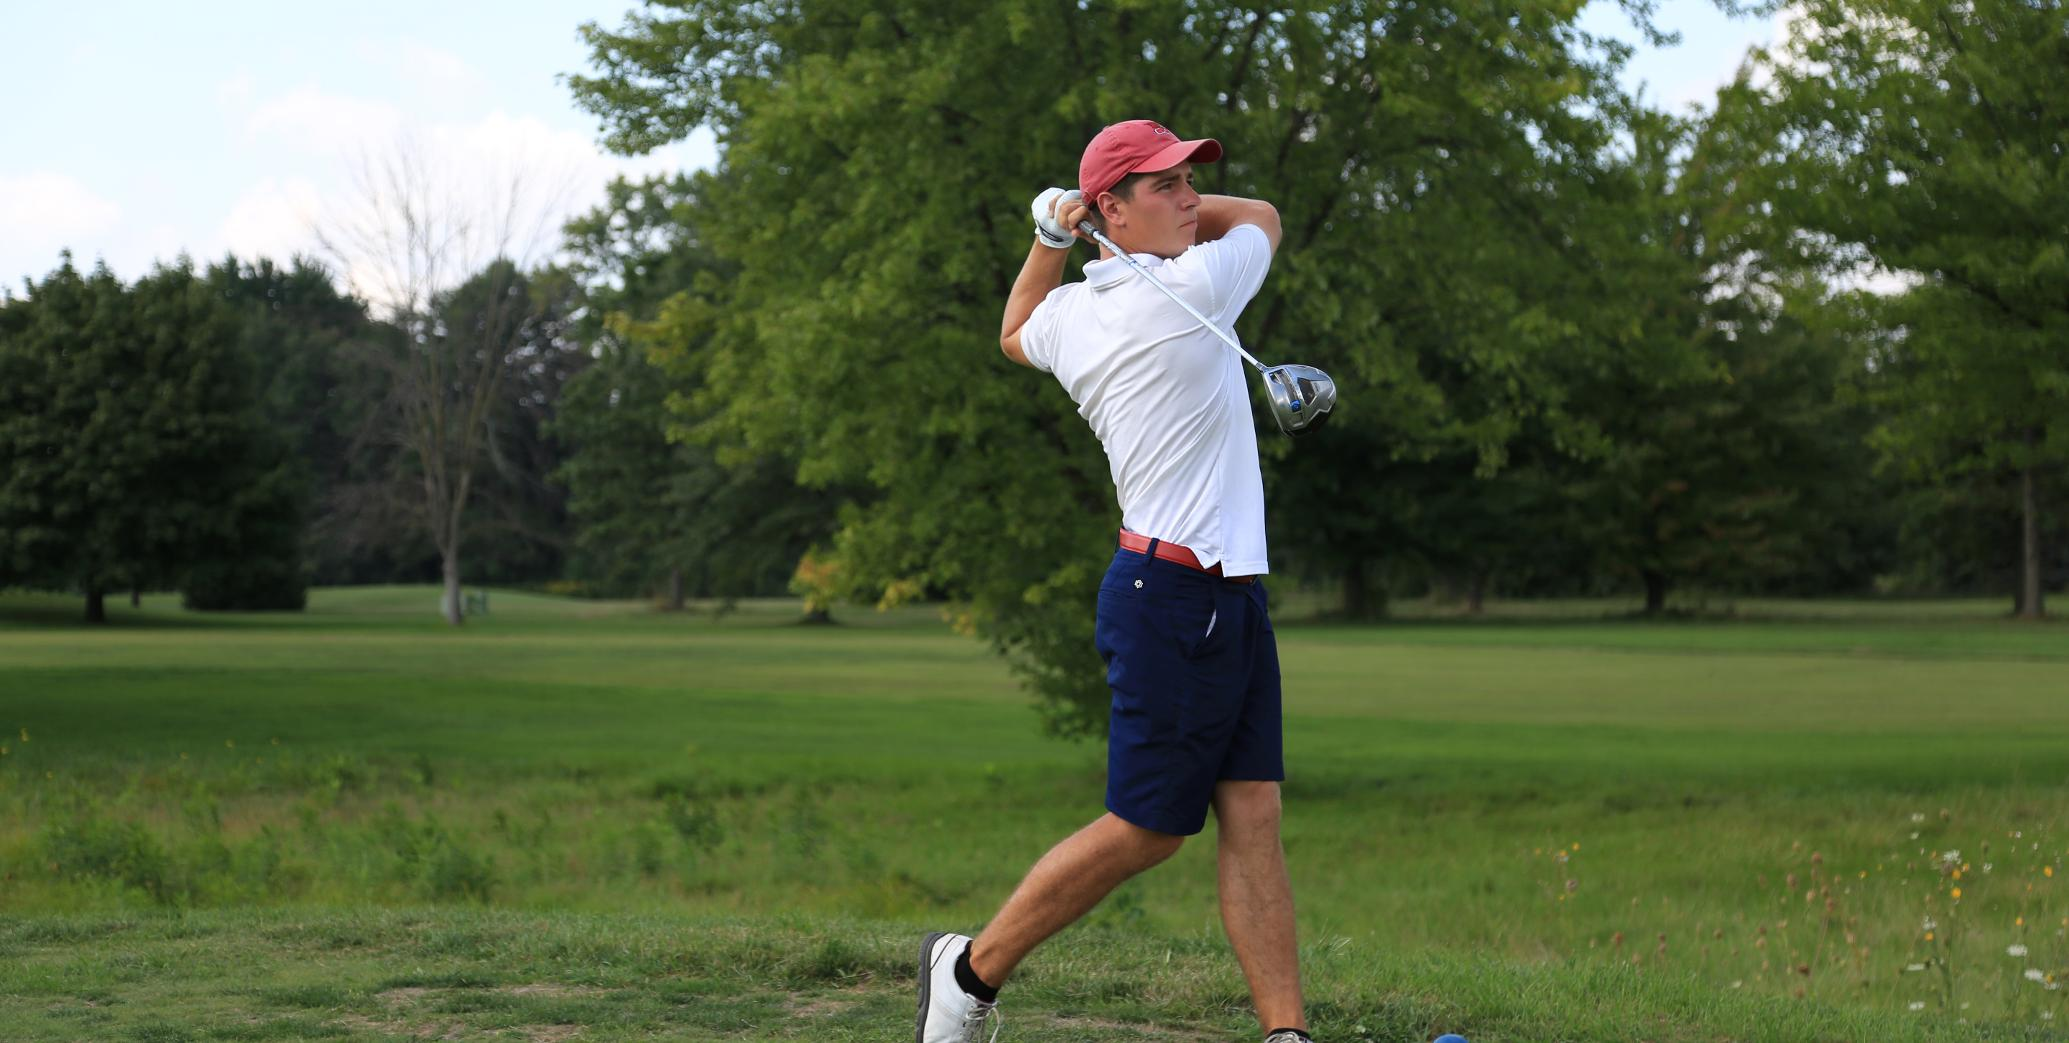 Ryan Peruski shot a five-under 67 in round one at the Purgatory Regional on Sunday...